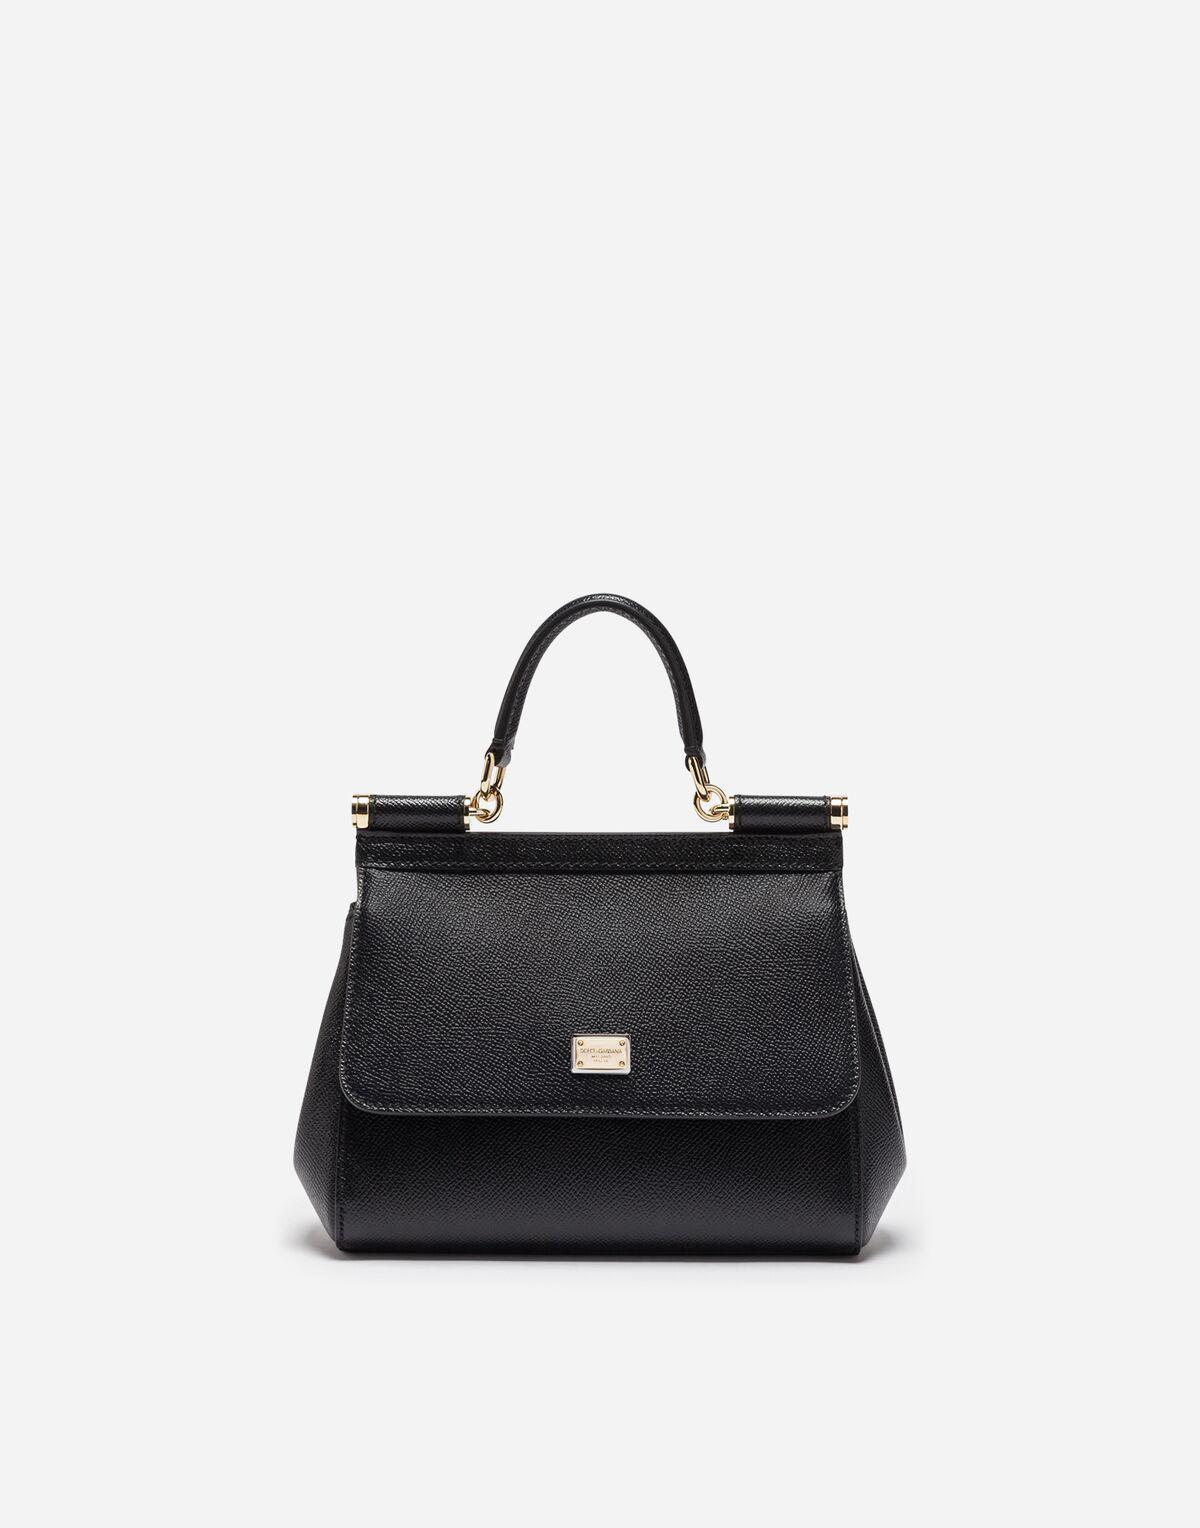 Lyst - Dolce   Gabbana Small Dauphine Leather Sicily Bag in Black cd39dfce16f3a